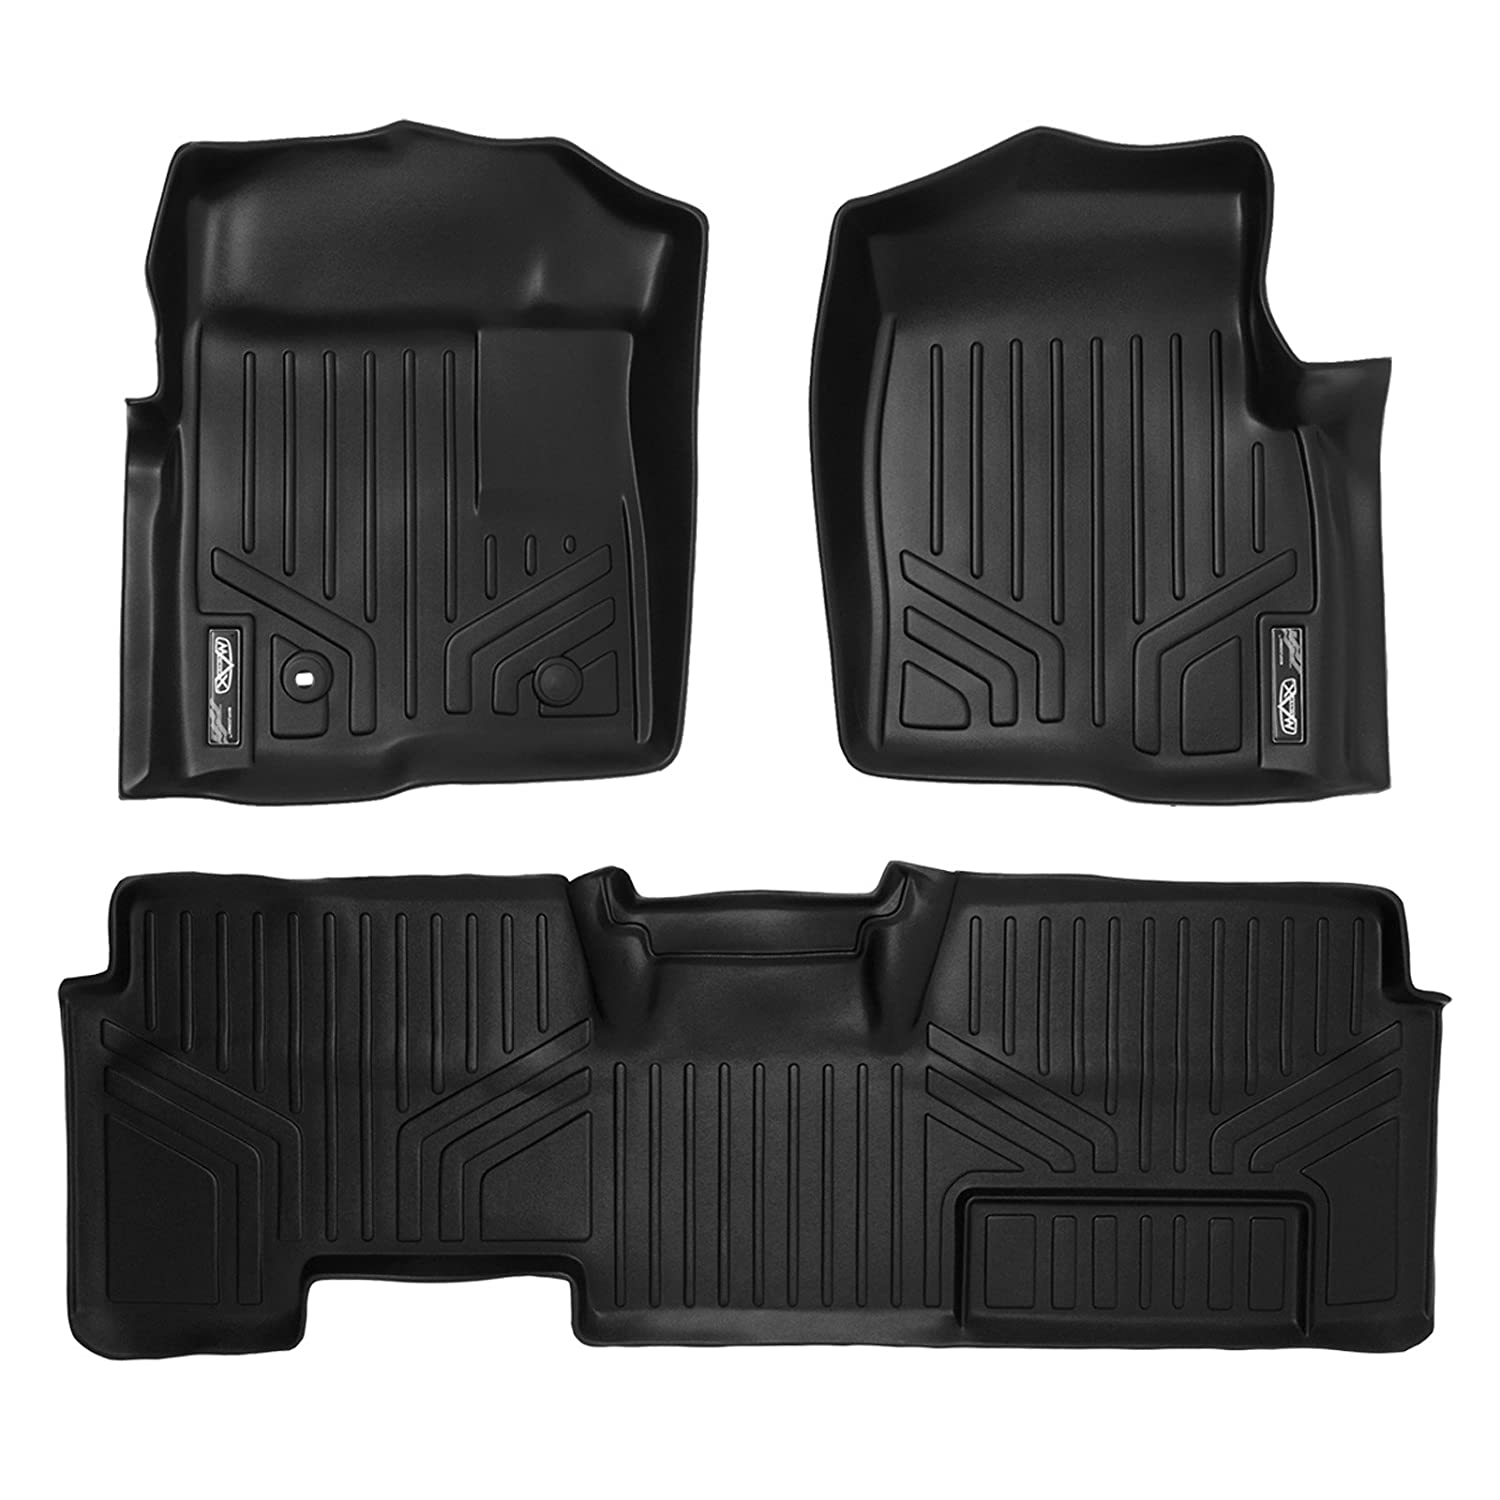 MAXLINER A0017/B0026 Floor Mats for Ford F-150 Super Cab Non Flow Center Console, 2009-2010 Complete Set, Black